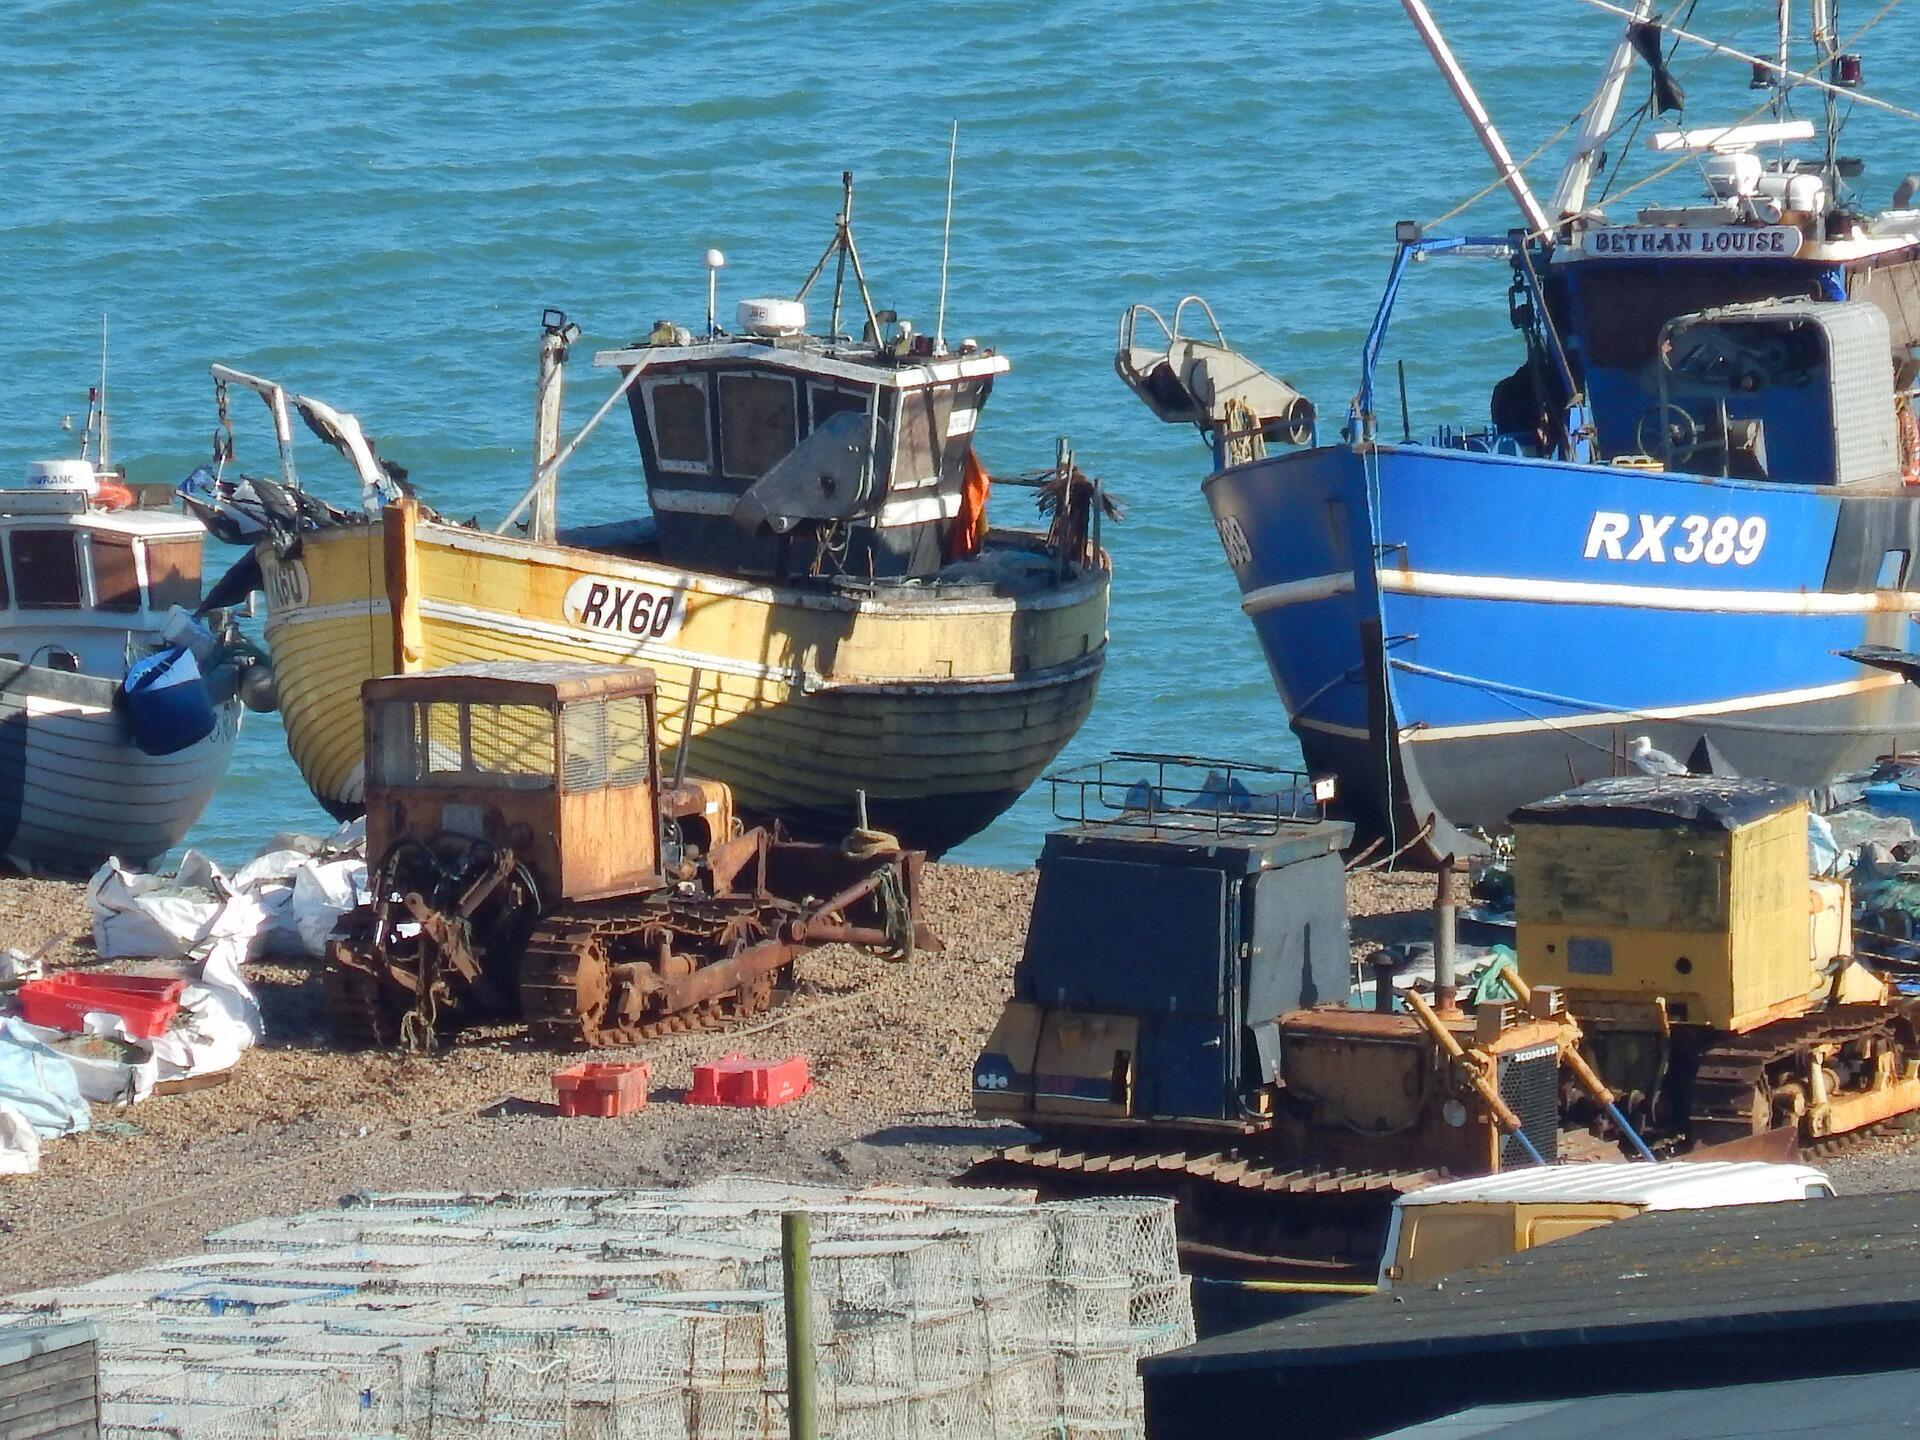 French access to British territorial waters and British access to Europe's market for exports are the main issues for the two countries when it comes to fishing after Brexit.